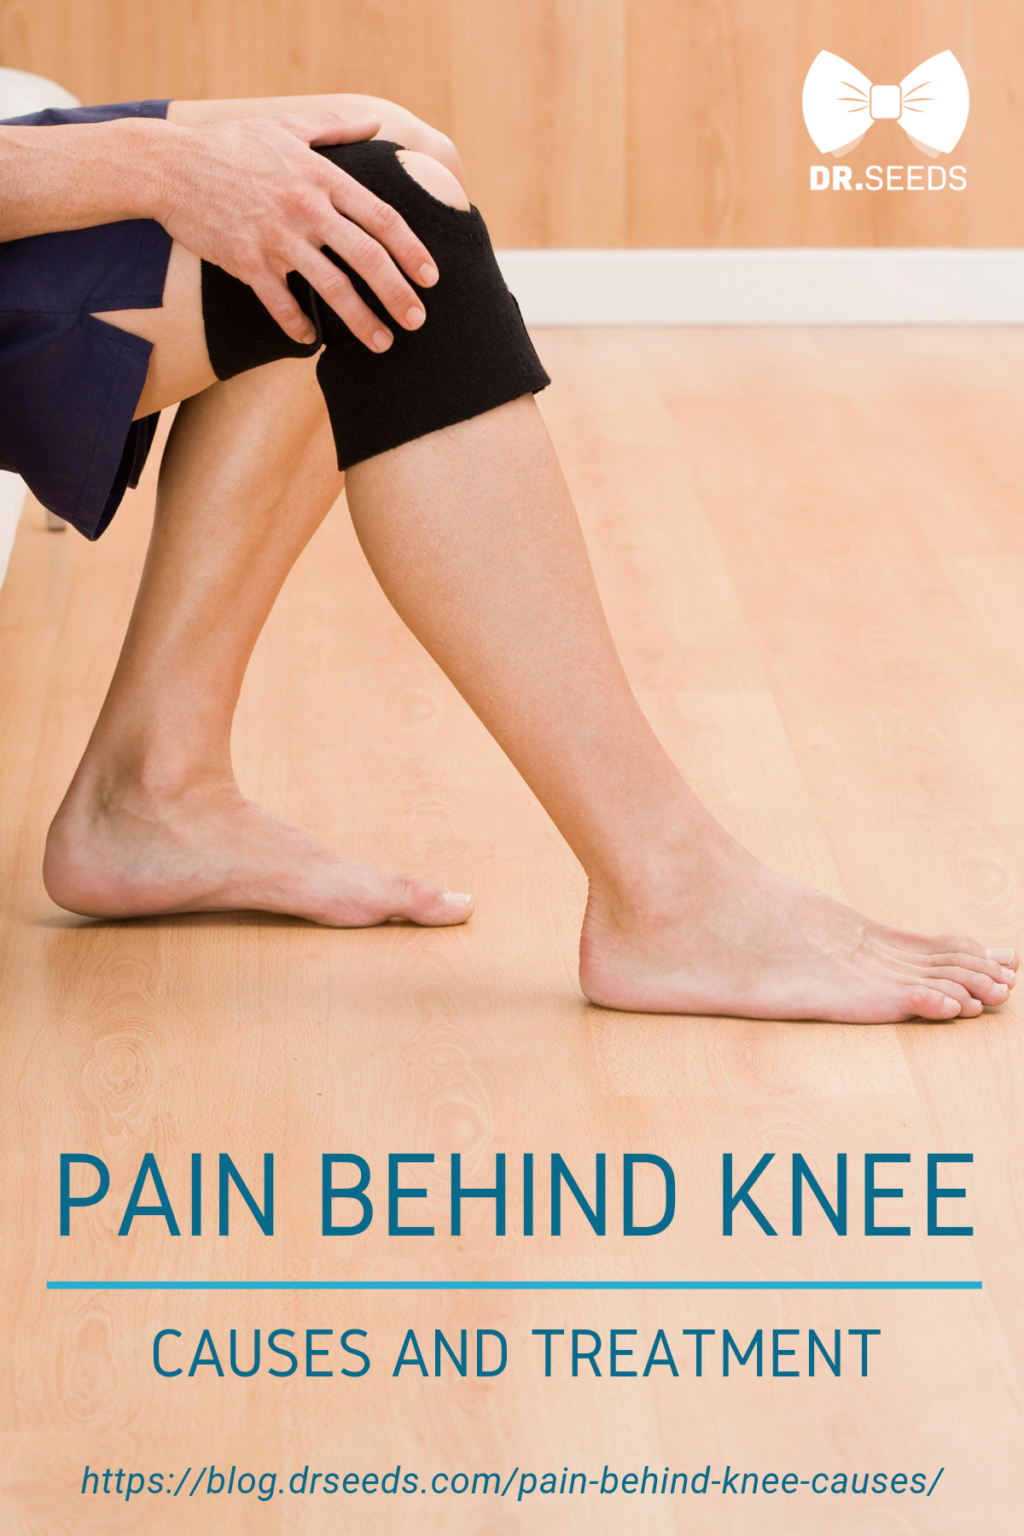 Pain Behind Knee: Causes and Treatment